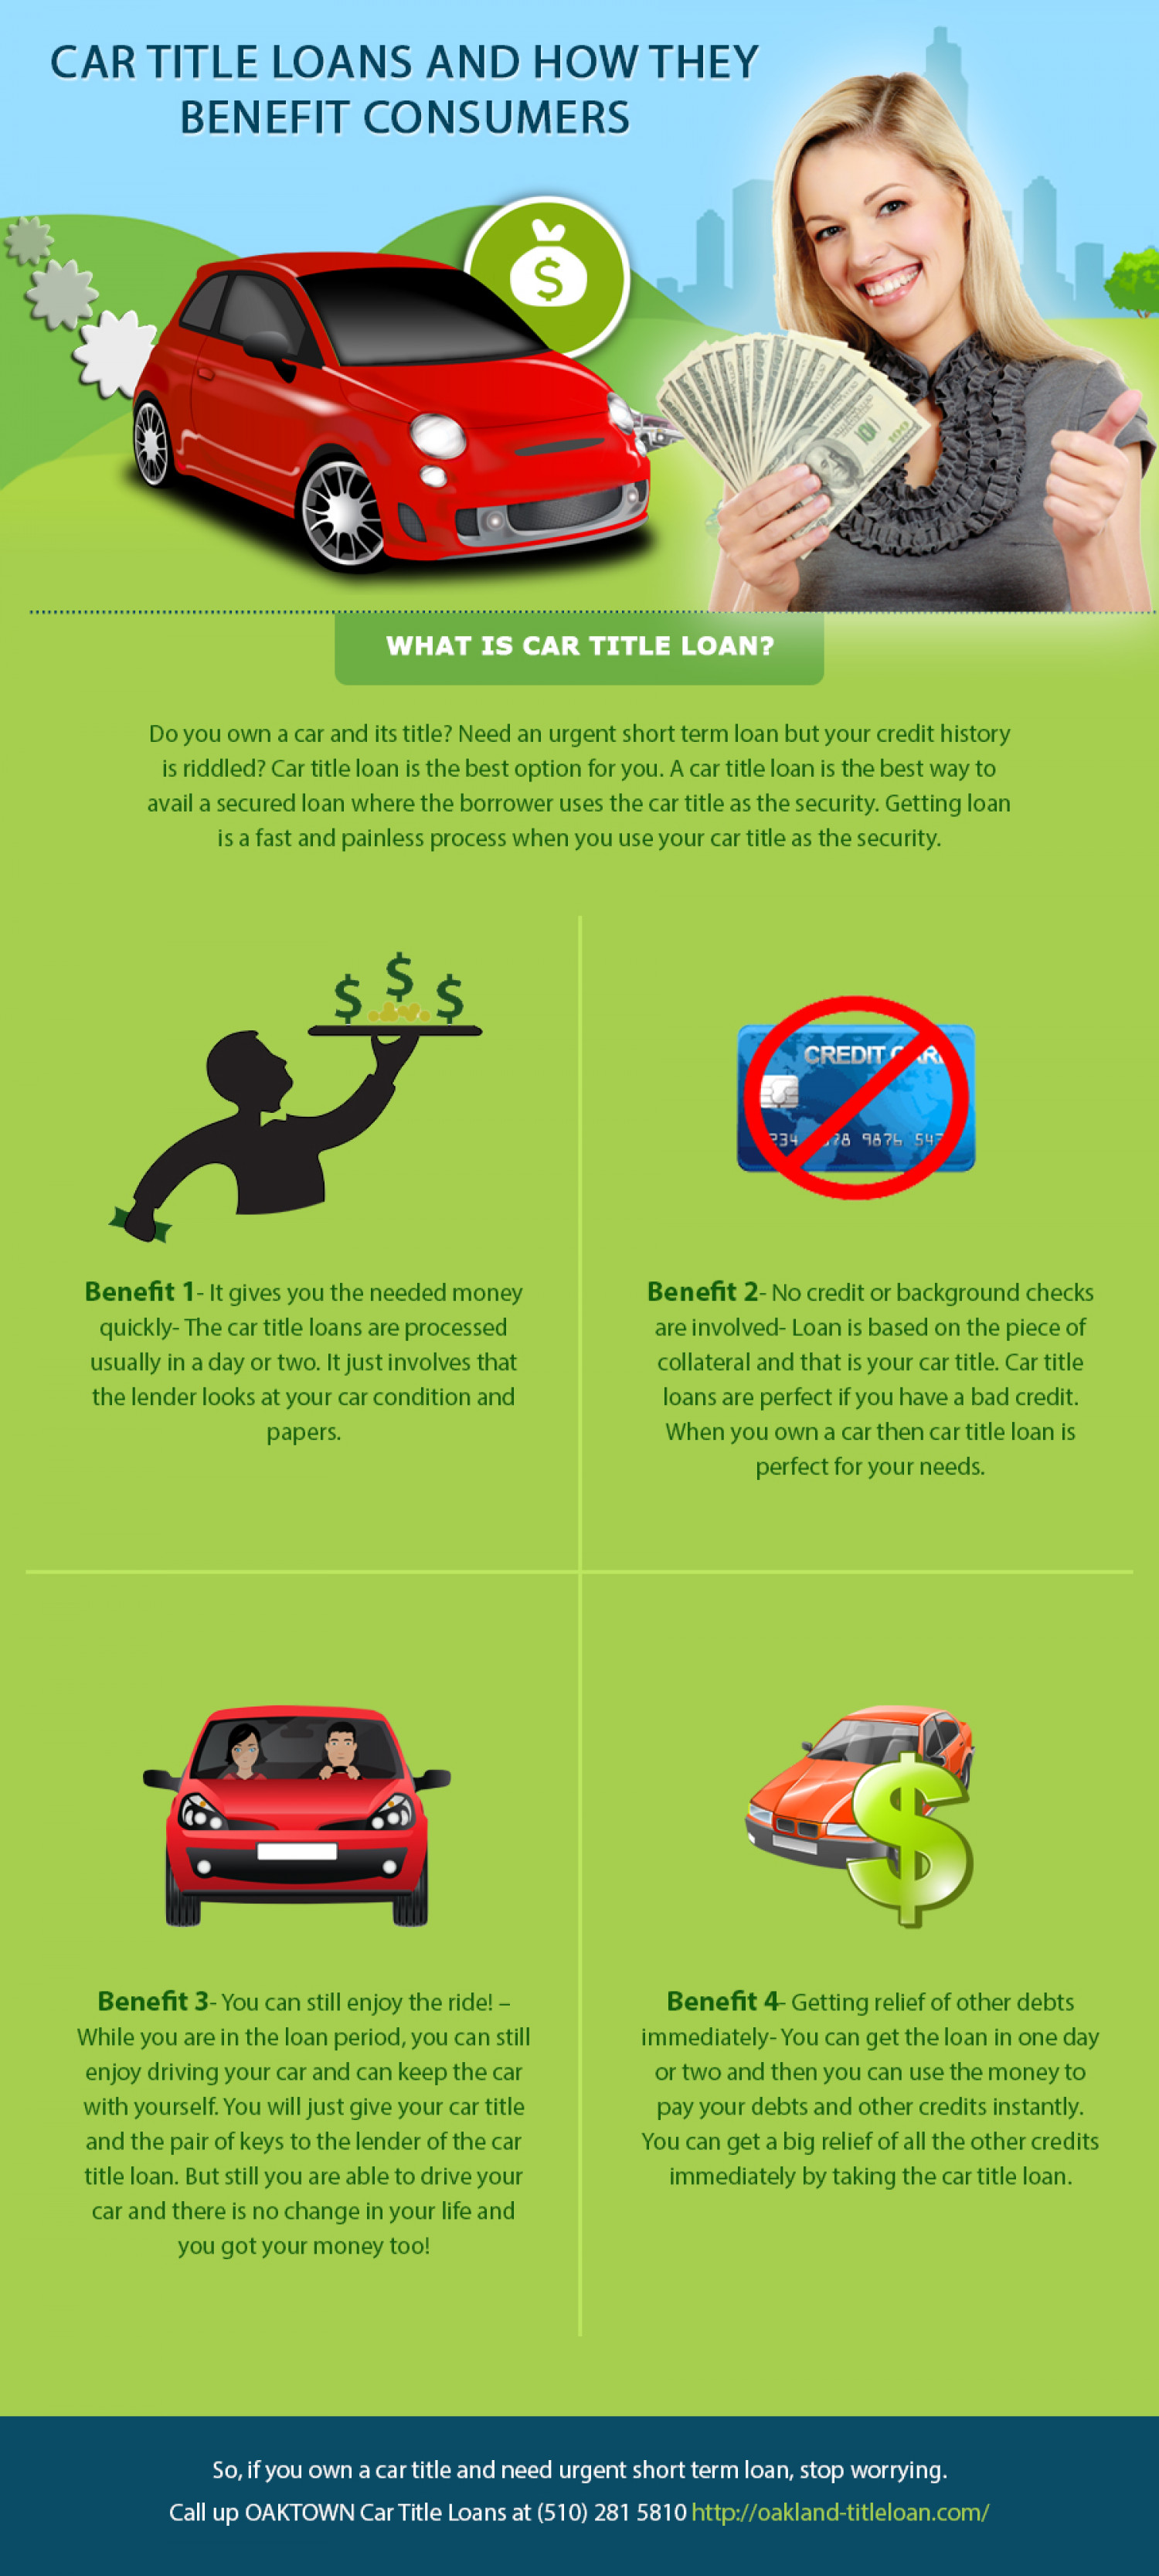 Car Title Loans And How They Benefit Consumers Visual Ly